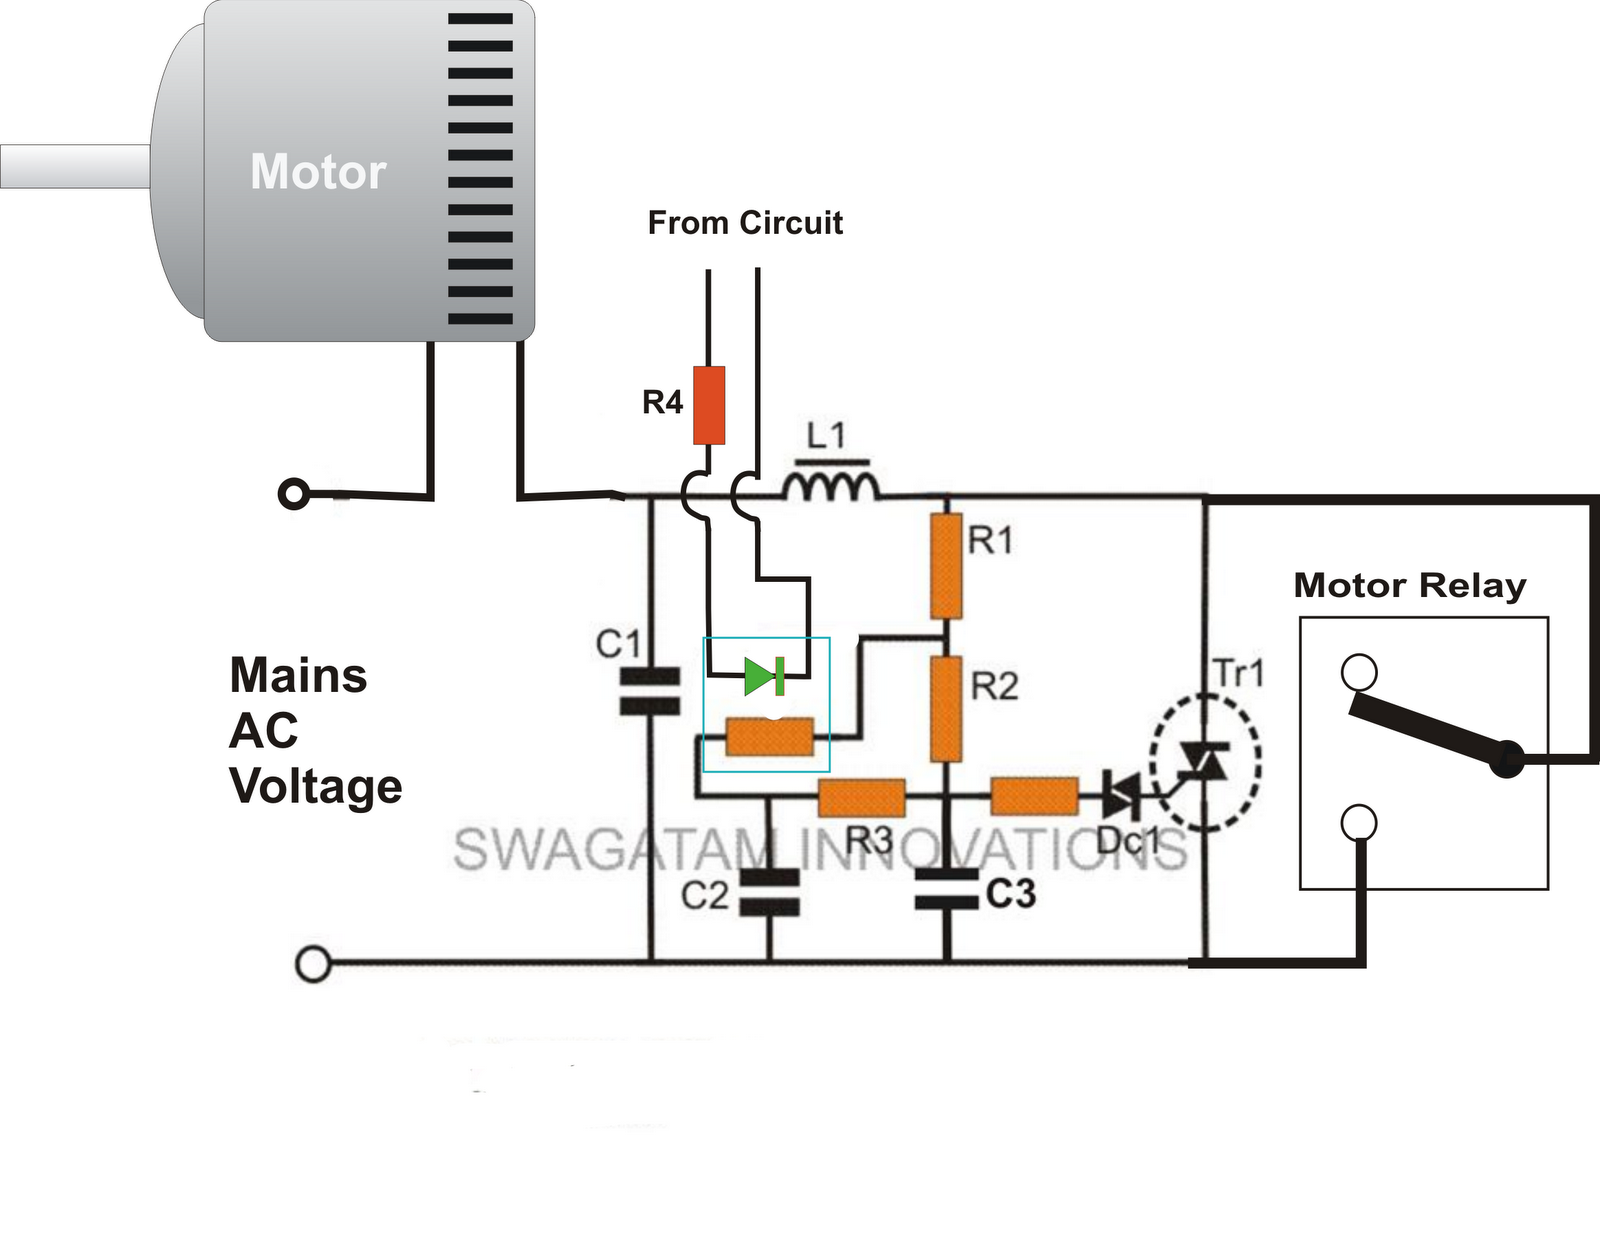 single phase contactor wiring diagram with Adding Soft Start To Water Pump Motors on Dayton Reversing Drum Switch Wiring Diagram besides 7c4zp Just Installed Sauna Patio Process furthermore 120 Volt Reversing Motor Schematic Wiring Diagrams as well Power Control Circuit For Forward And moreover Basic Relay Wiring Diagram.